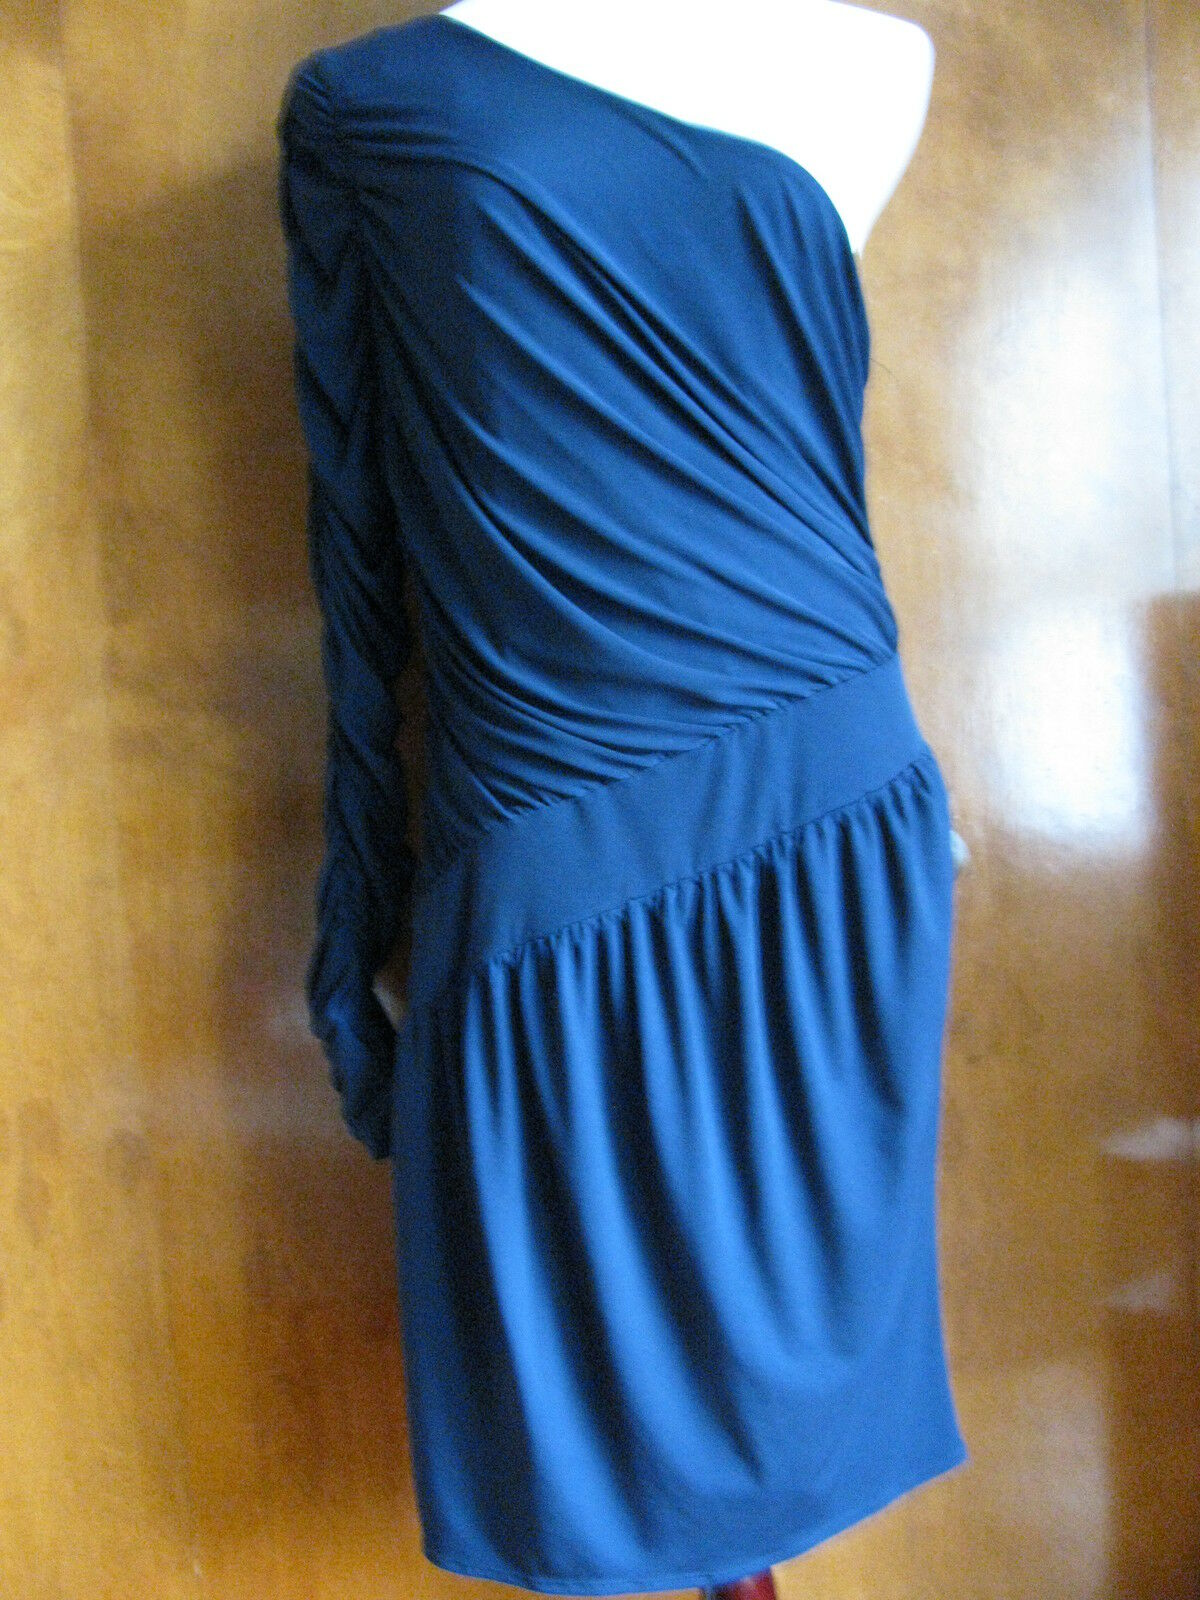 Laundry By Design Women's Navy Evening One Shoulder Lined Dress Size 12 NWT